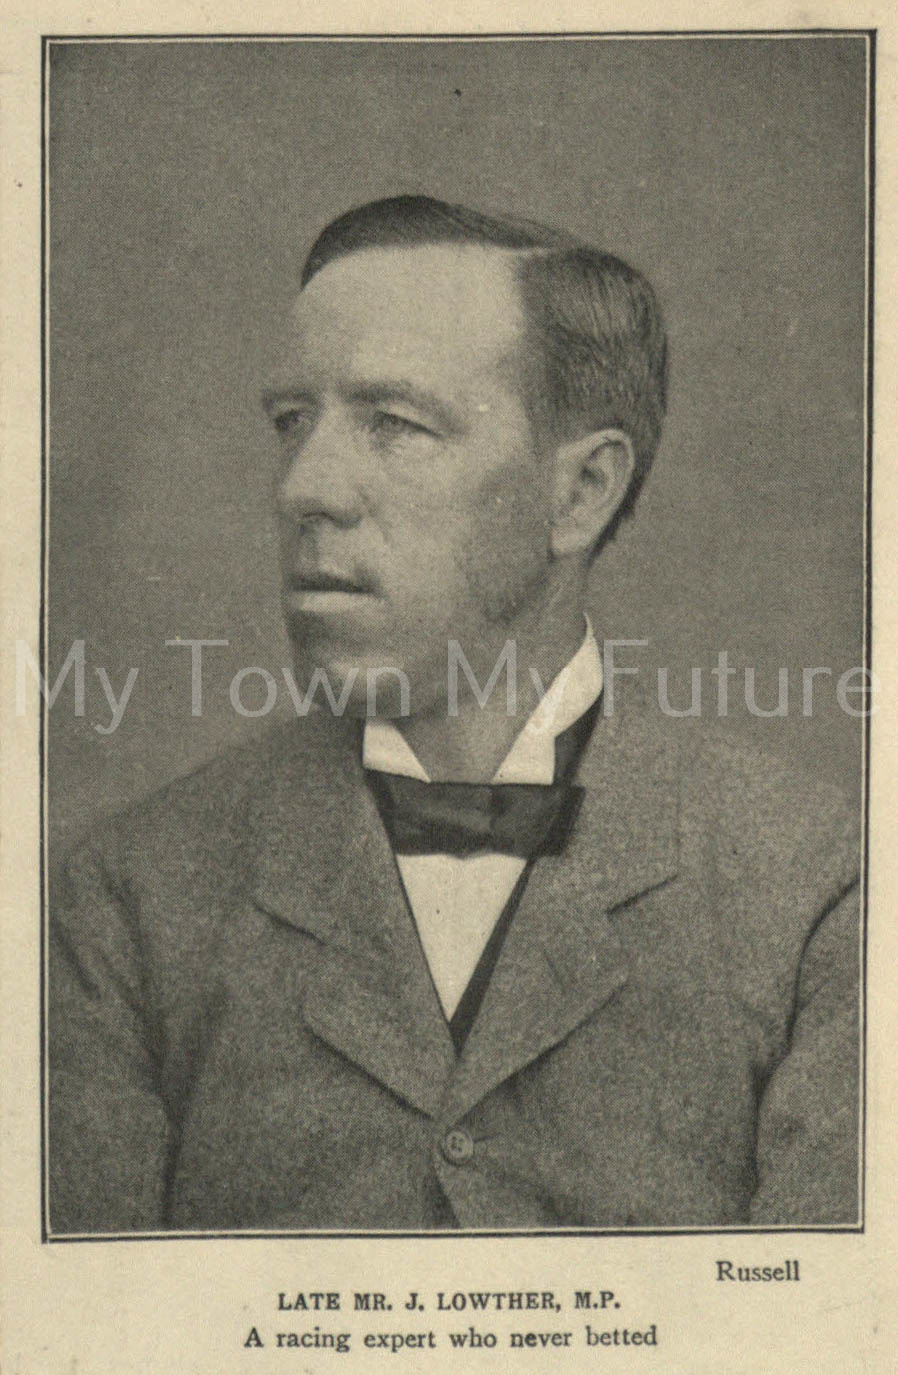 Mr J Lowther M.P.